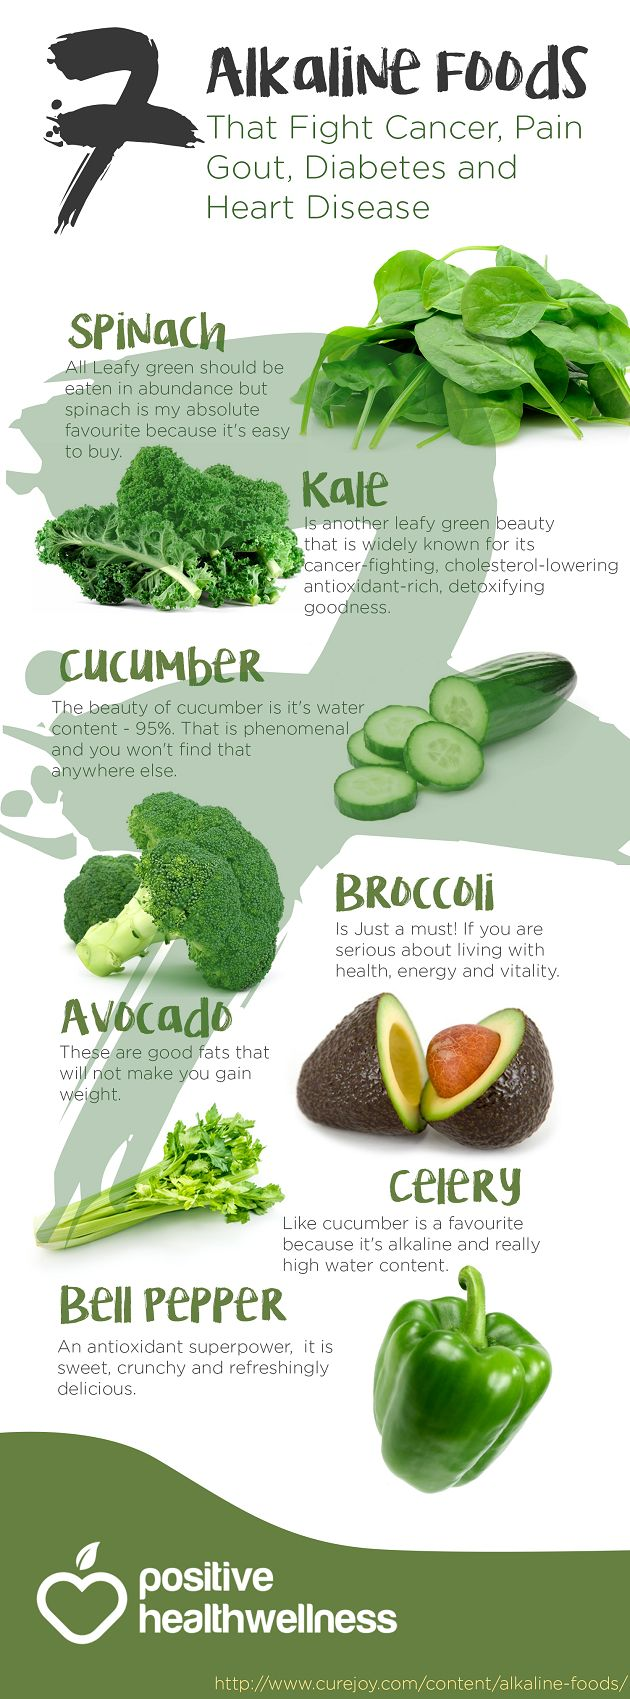 Top 7 alkaline foods for warding off diseases infographic top 7 alkaline foods for warding off diseases infographic forumfinder Images